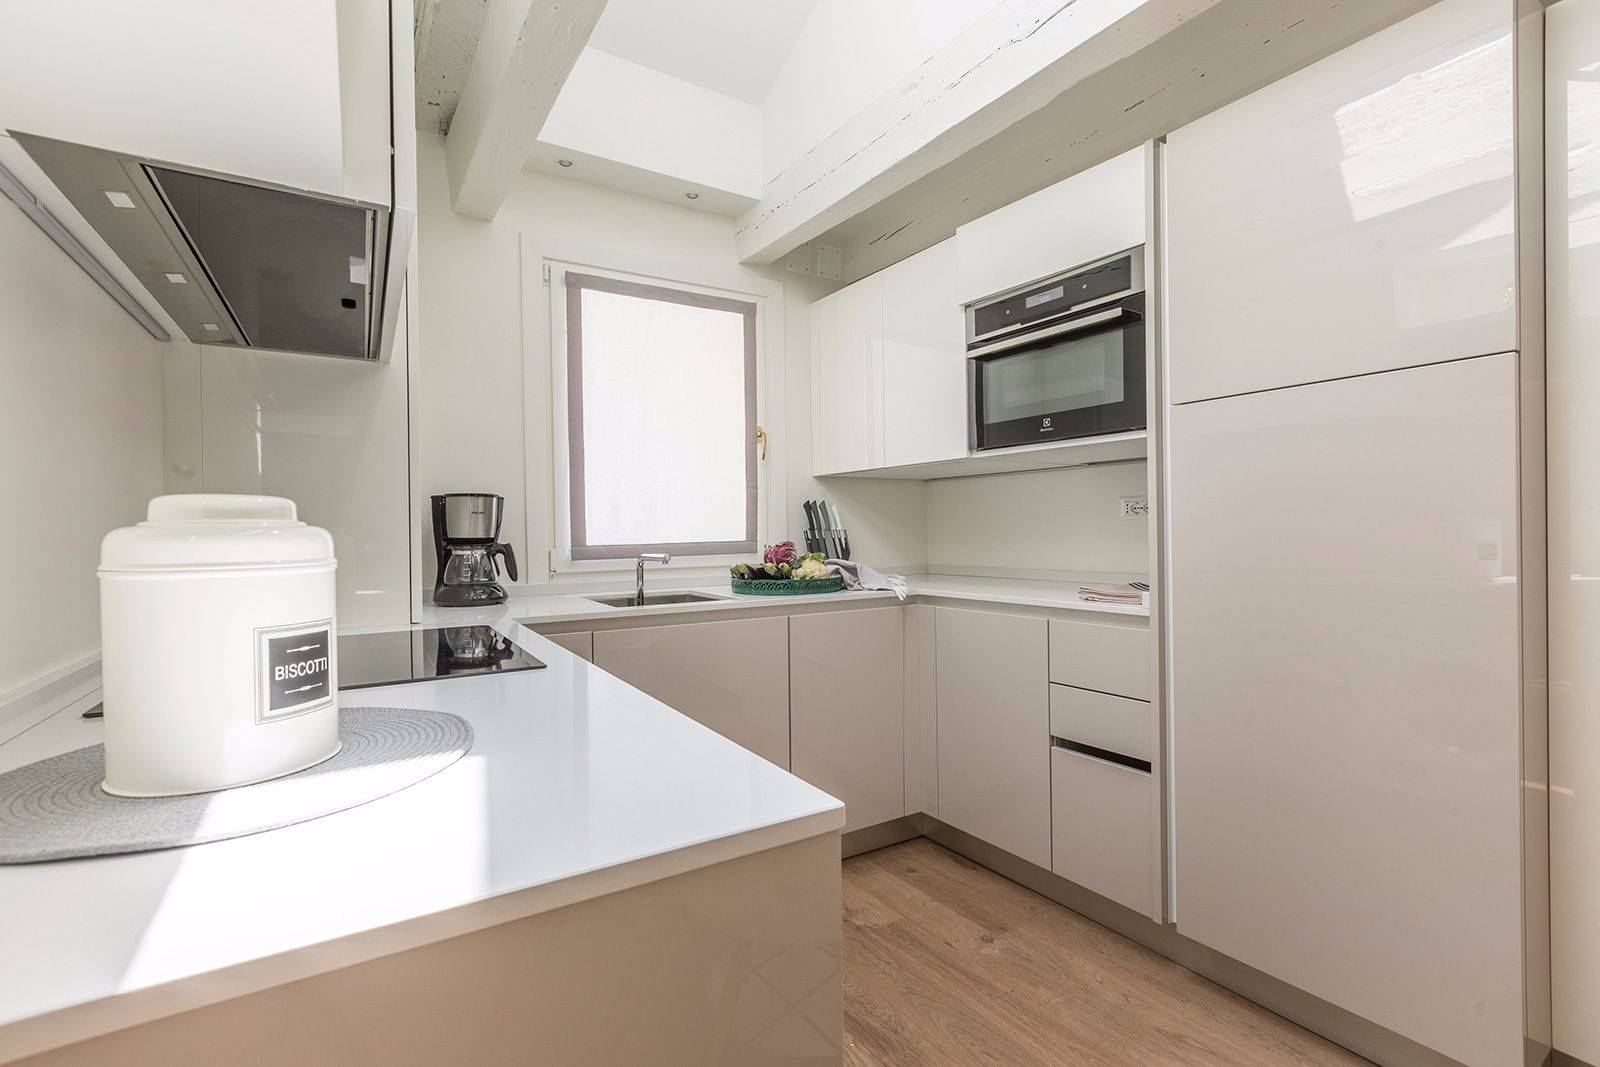 the kitchen is bright and spacious and it is fully equipped